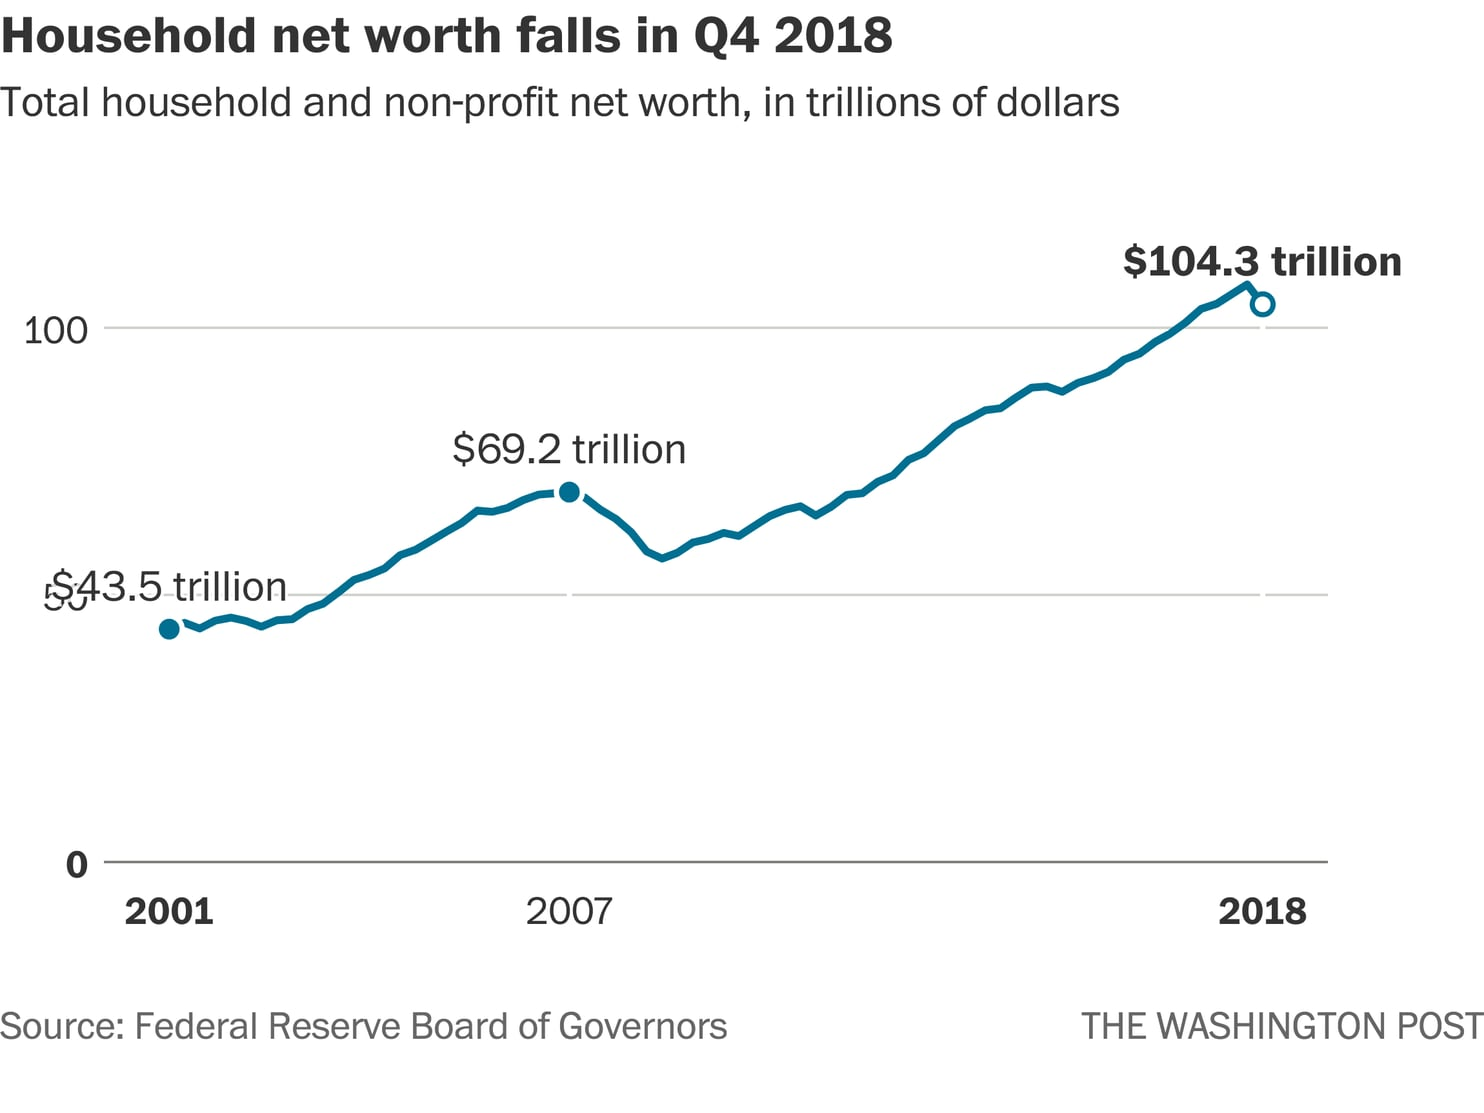 Household Net Worth Falls By Largest Amount Since The